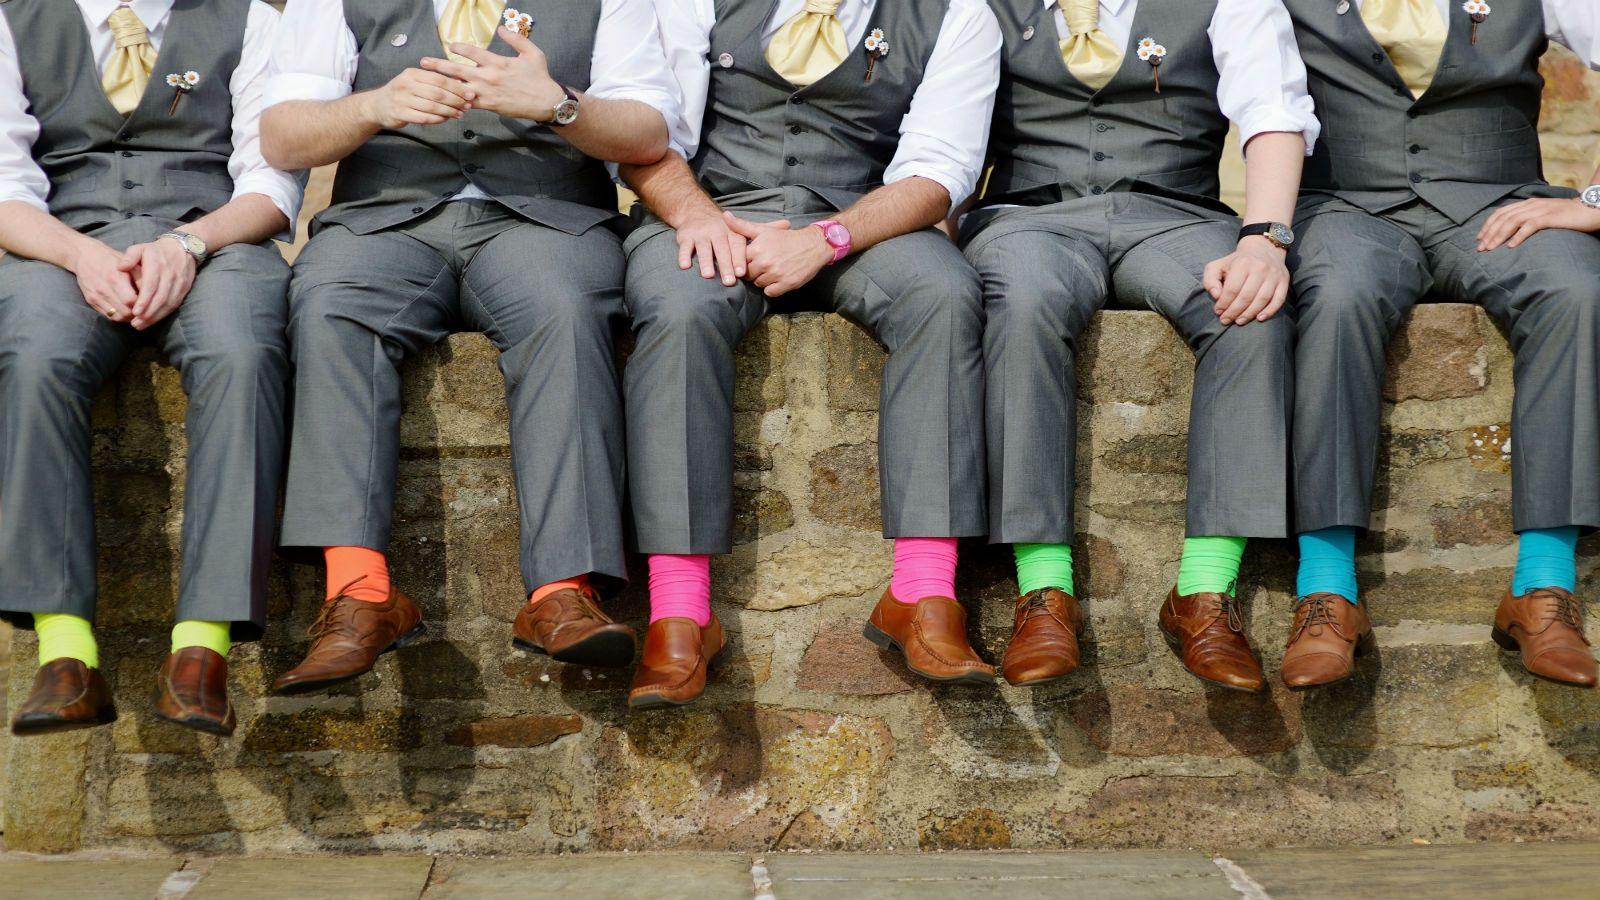 Philadelphia Weddings - Groomsmen